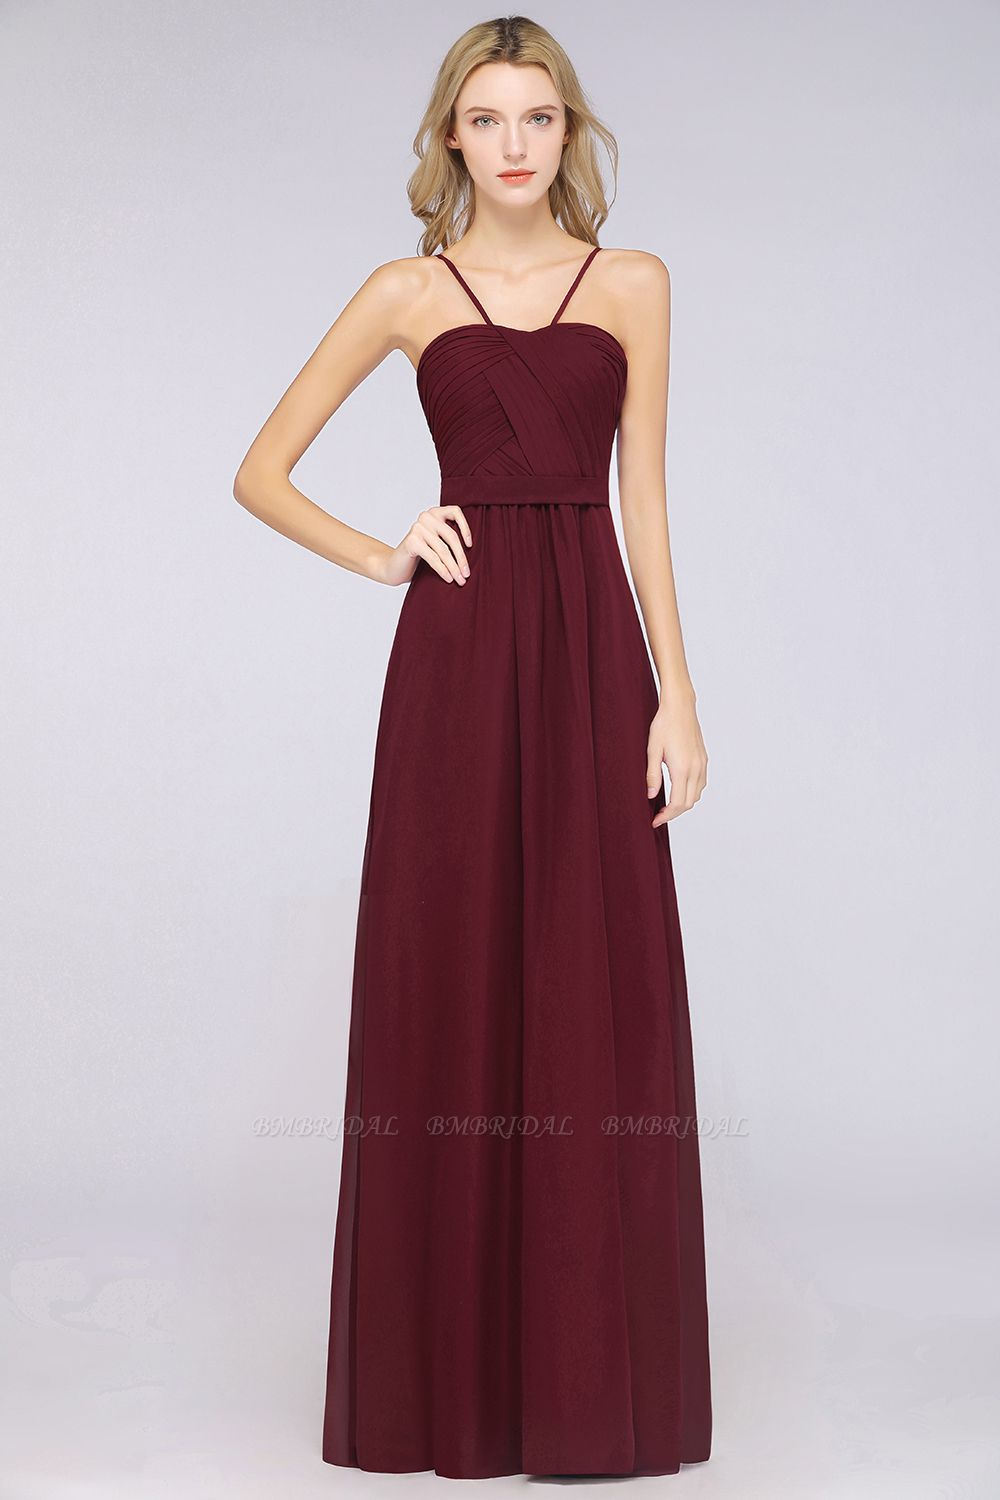 Chic Burgundy Sweetheart Long Bridesmaid Dress With Spaghetti-Straps